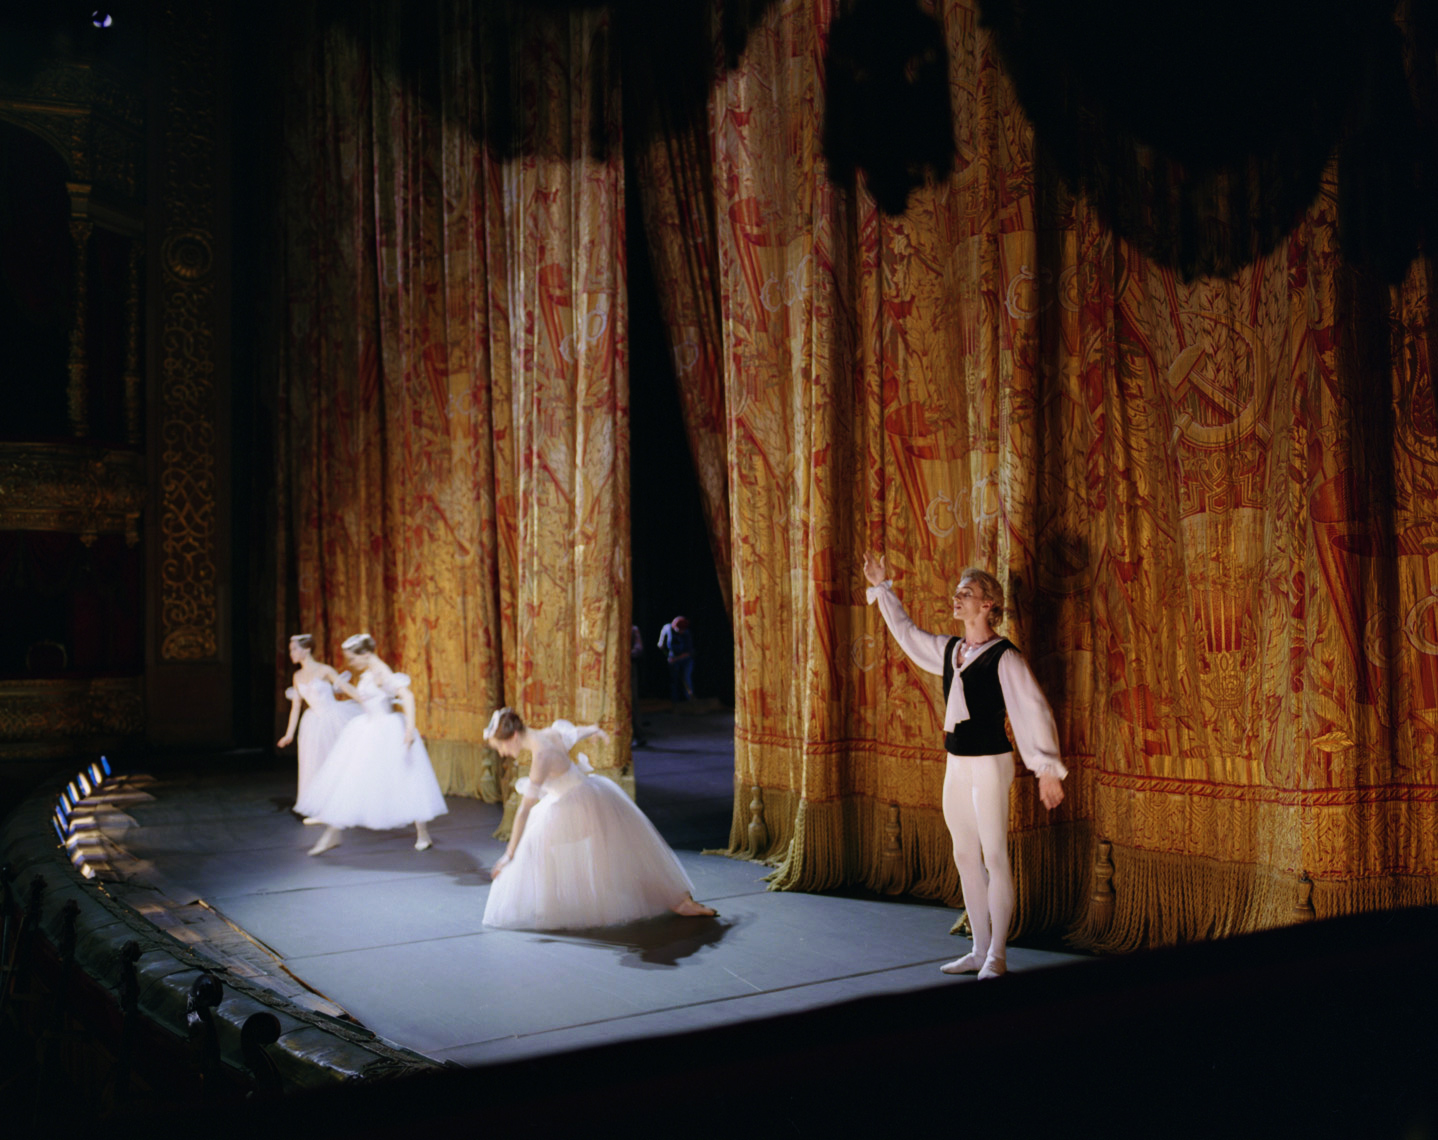 angeles_bolshoi_5.jpg